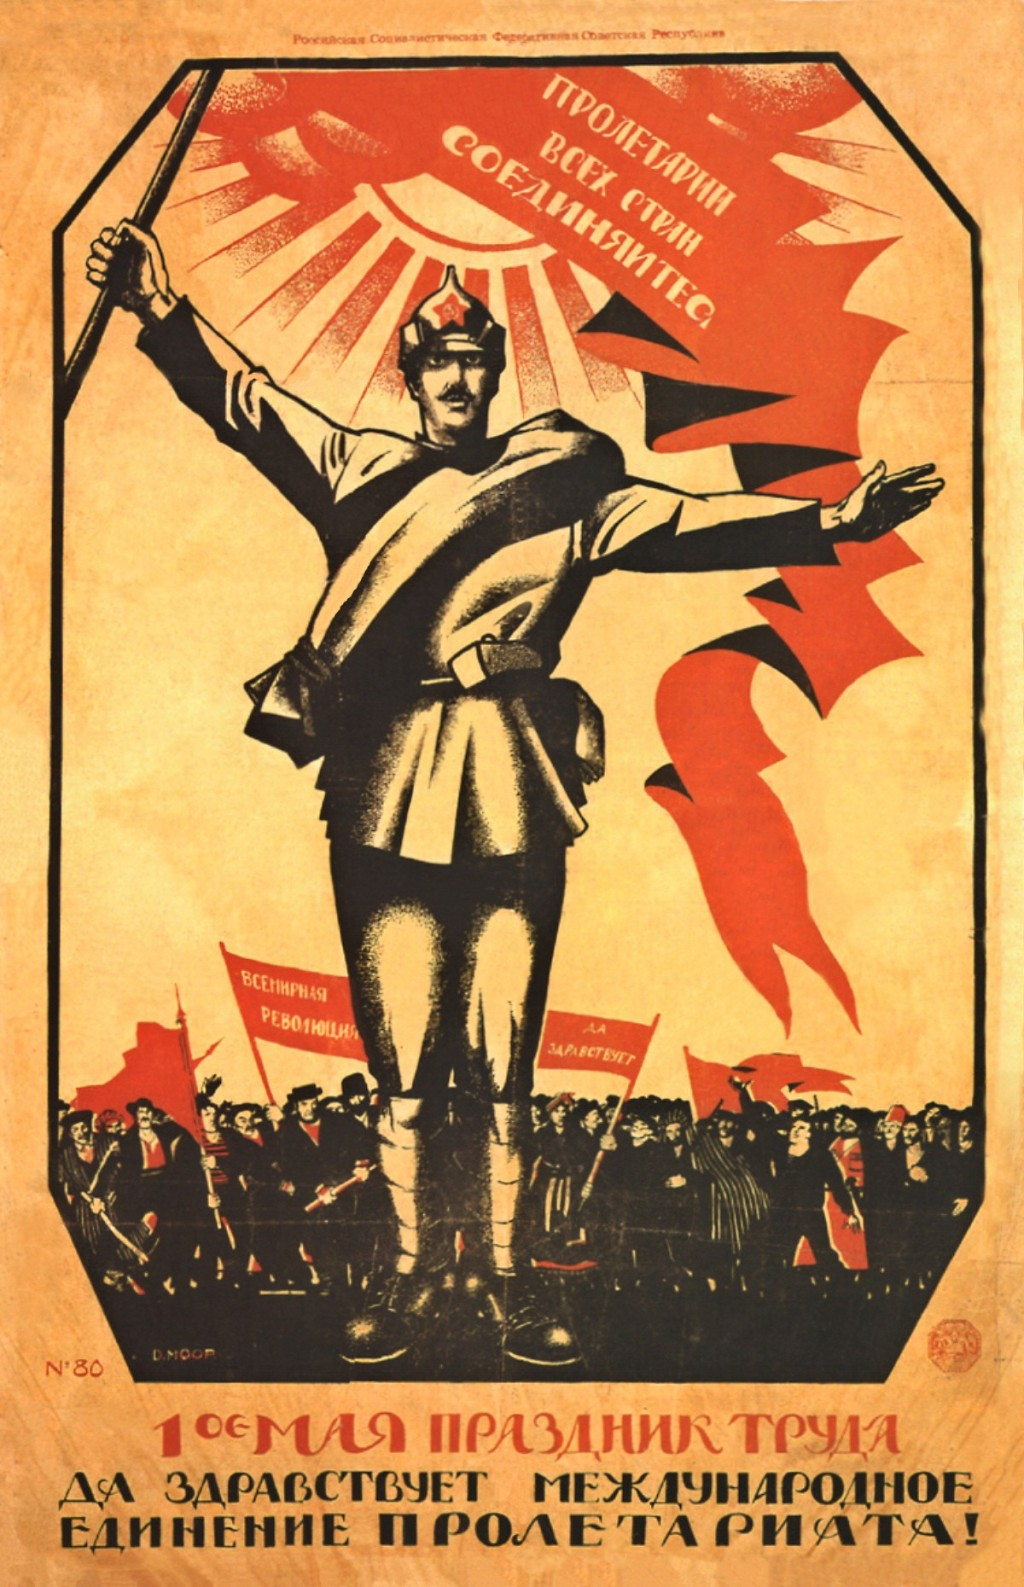 00 Dmitri Moor (Dmitri Orlov). Workers of the World Unite! 1 May. Labour Day. Greetings to the United International Proletariat. 1920